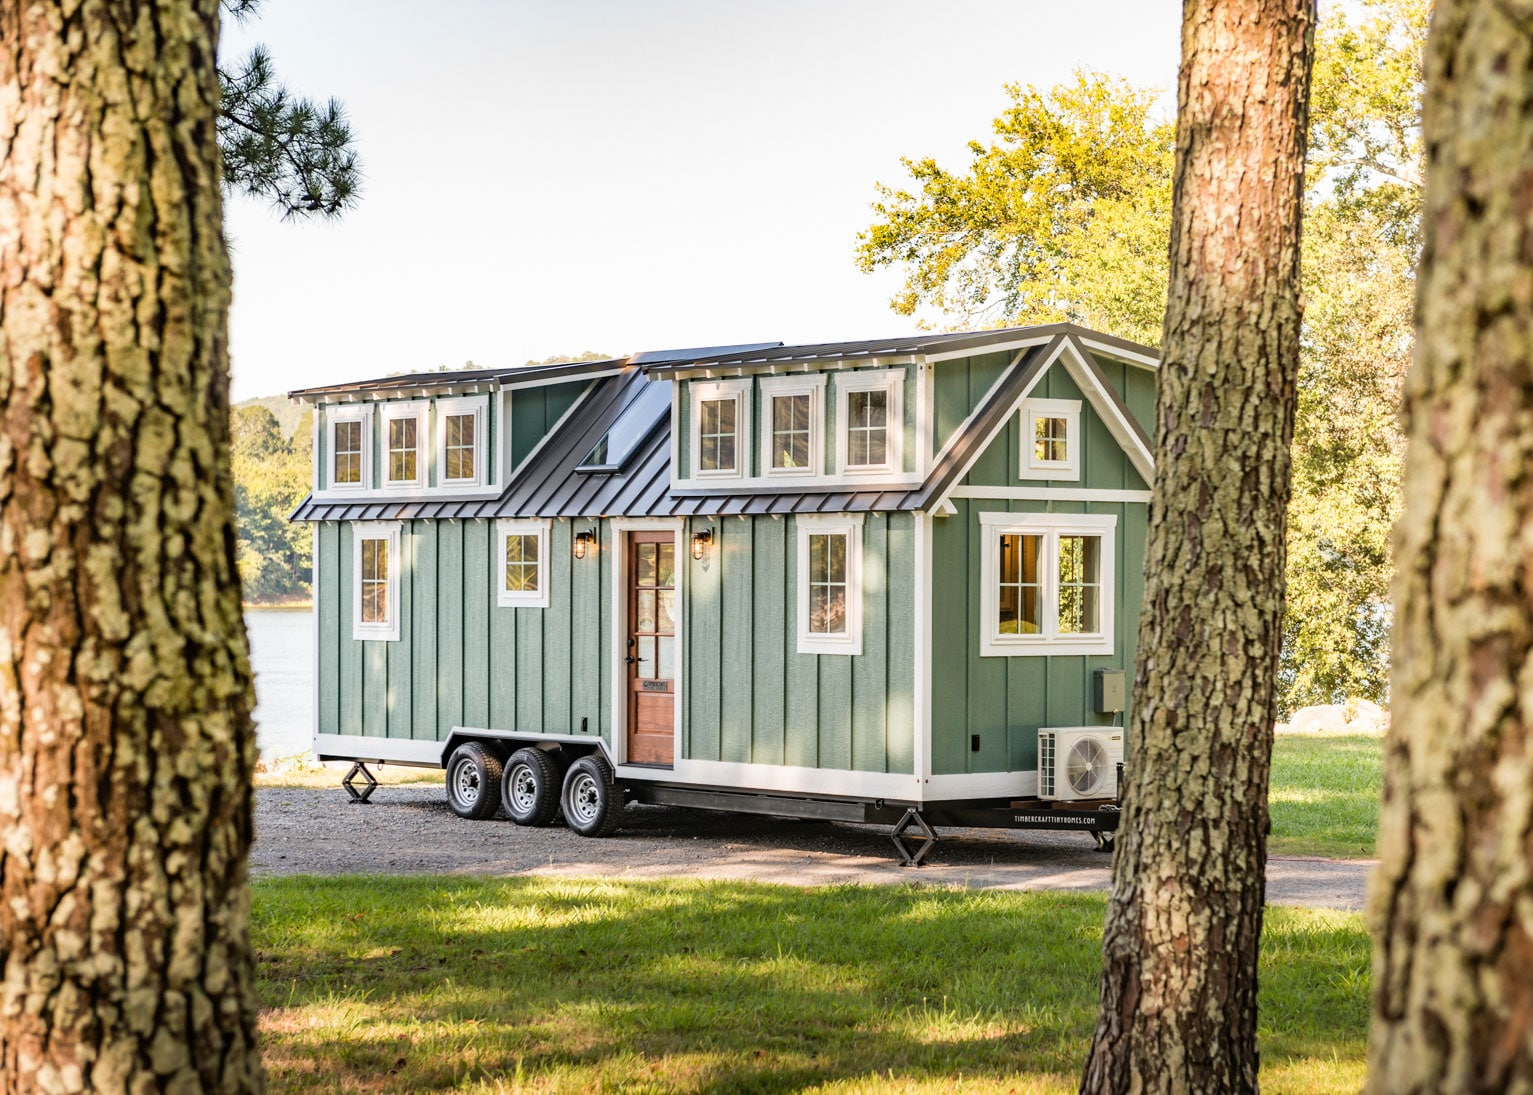 The Ridgewood Tiny Home Review | iReviews